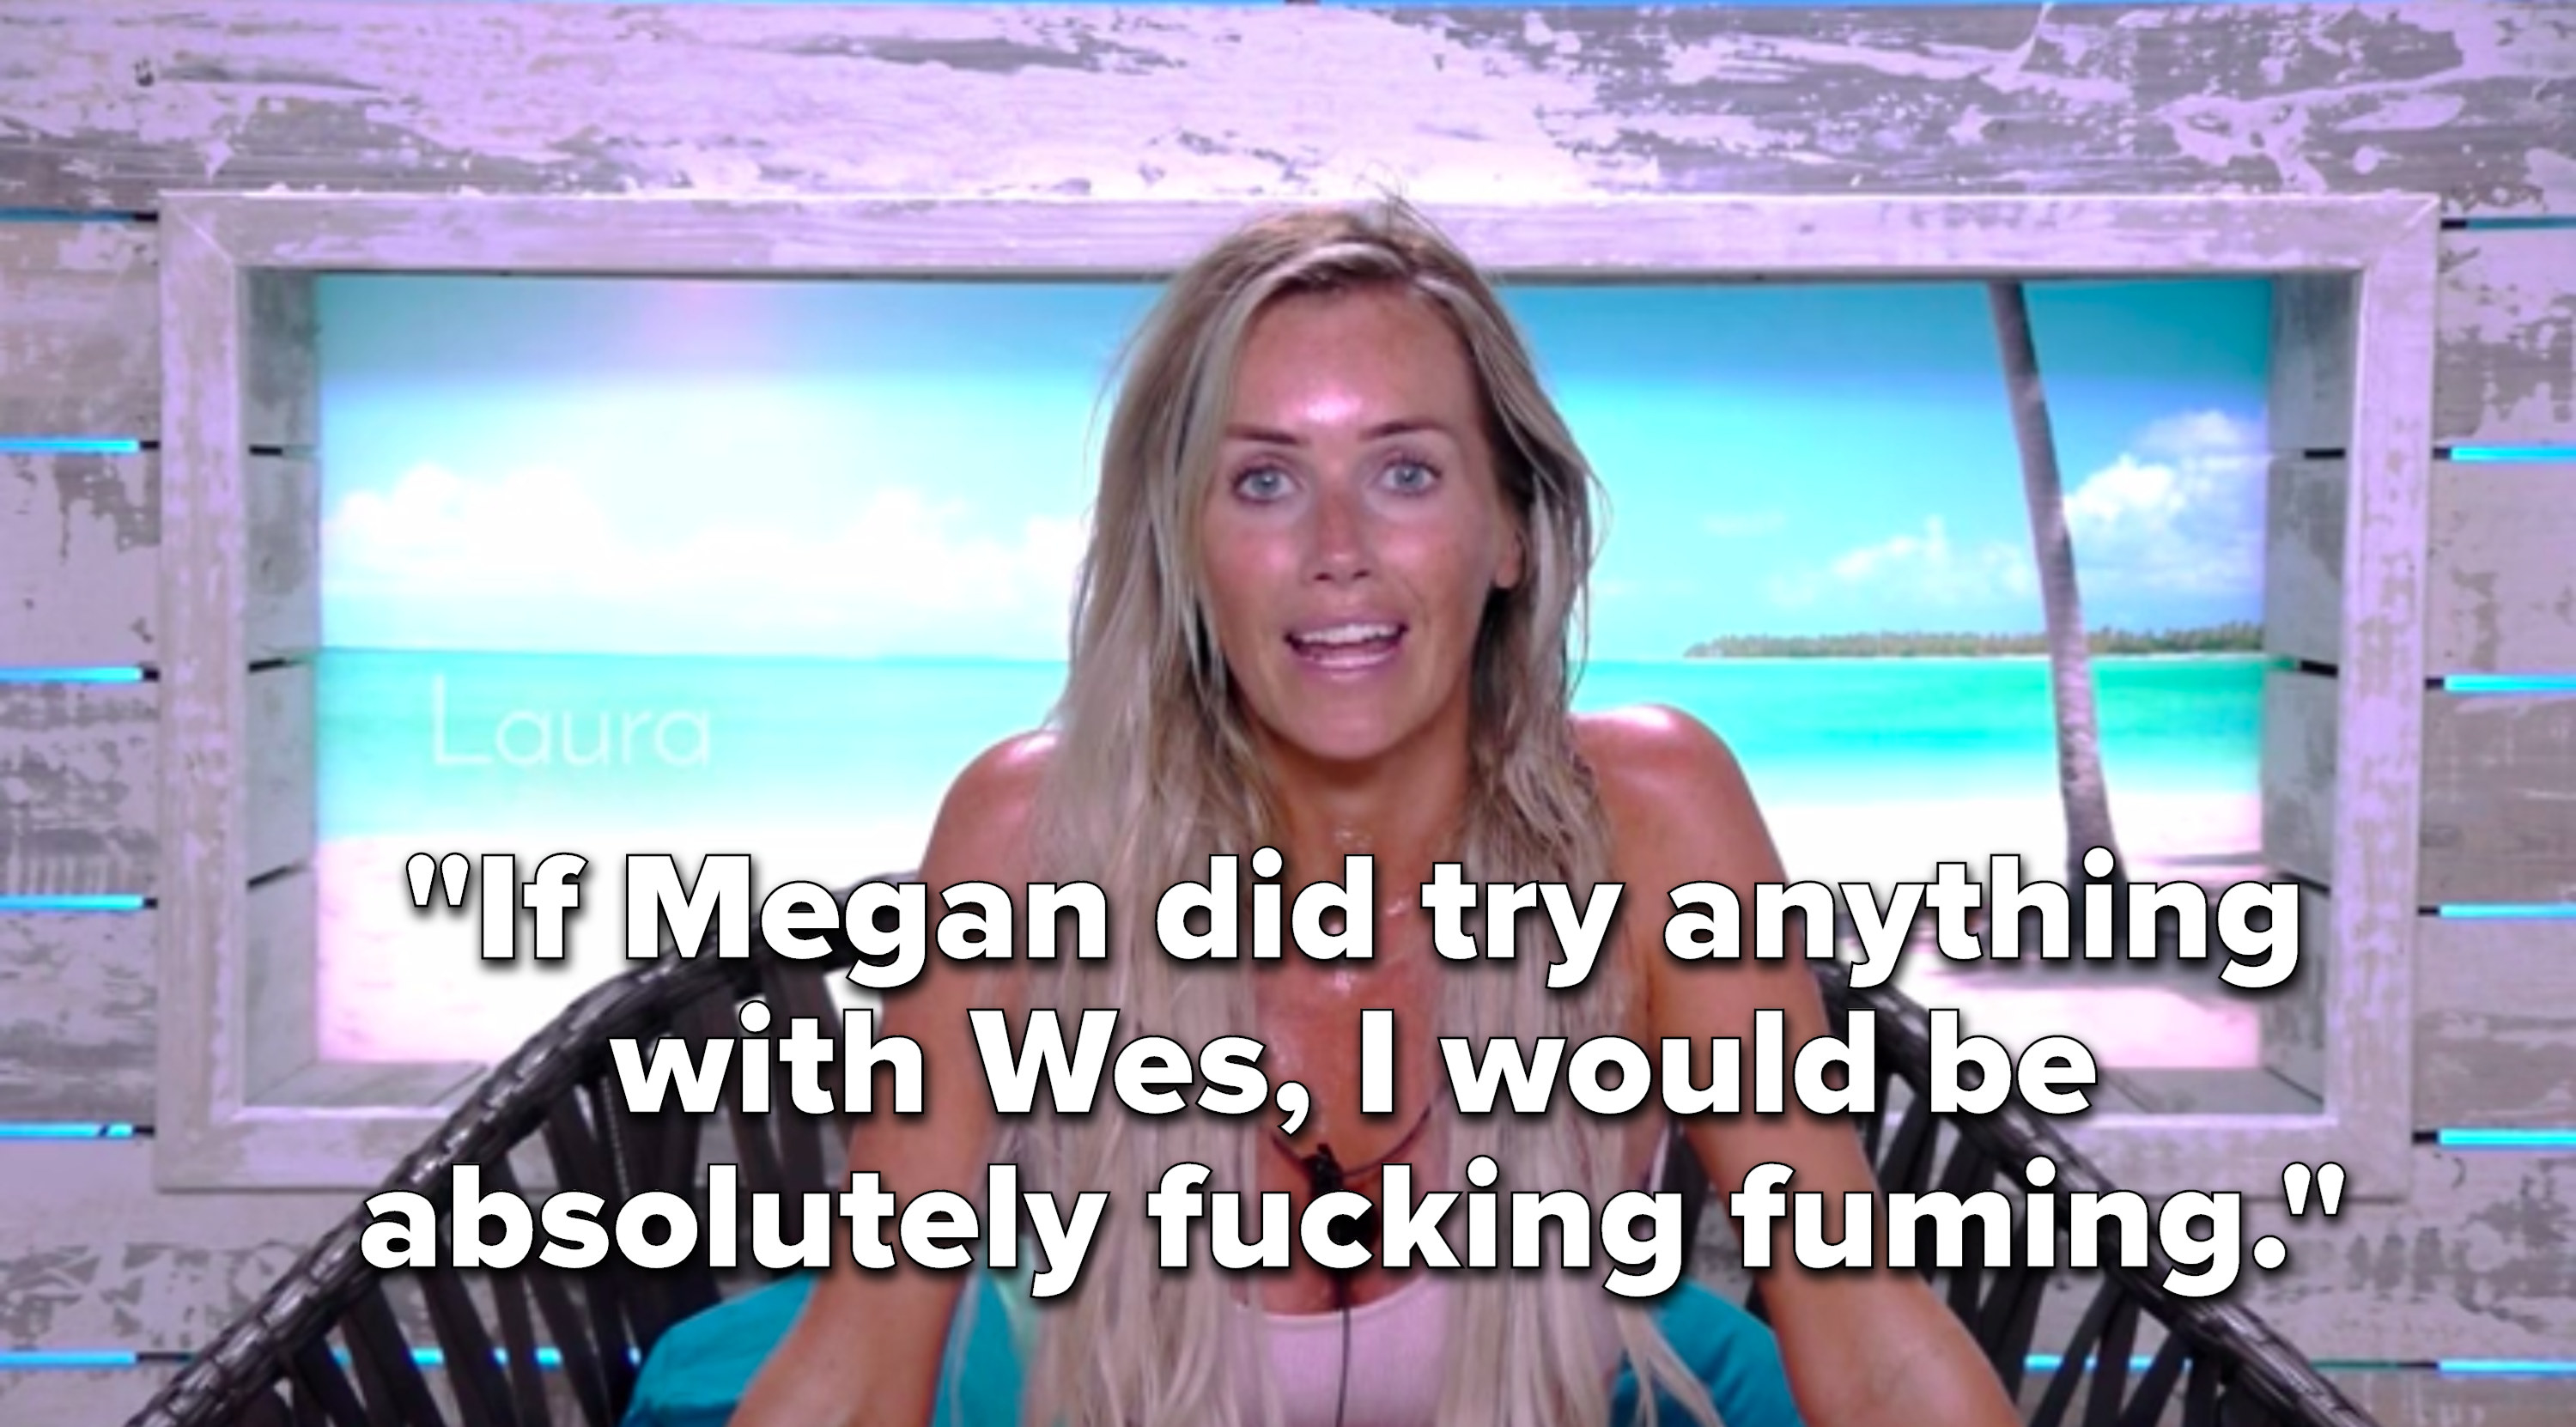 """Laura says,""""If Megan did try anything with Wes, I would be absolutely fucking fuming"""""""